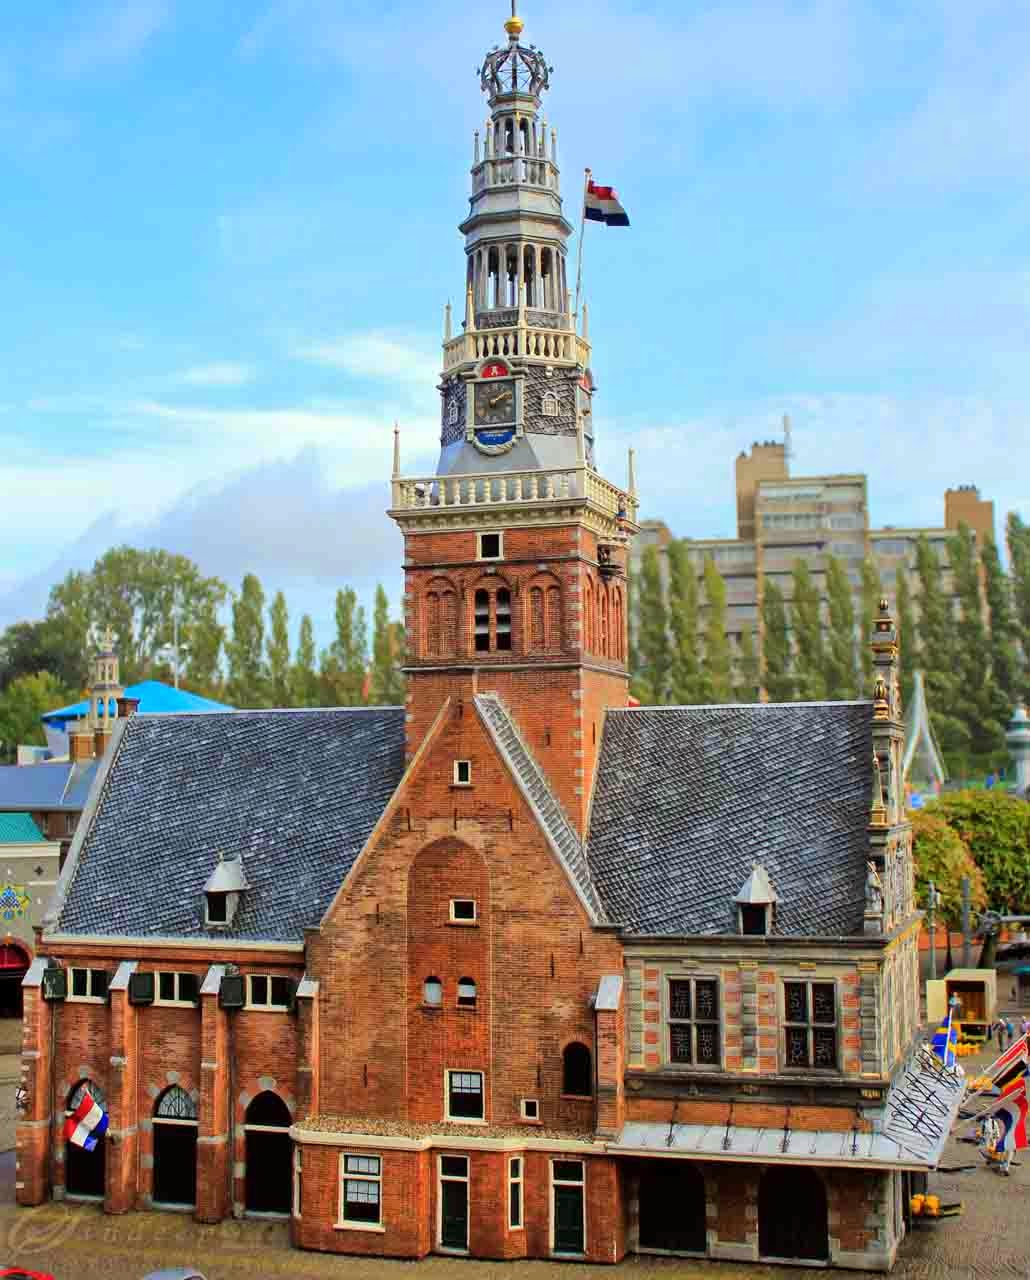 Waag building of Alkmaar